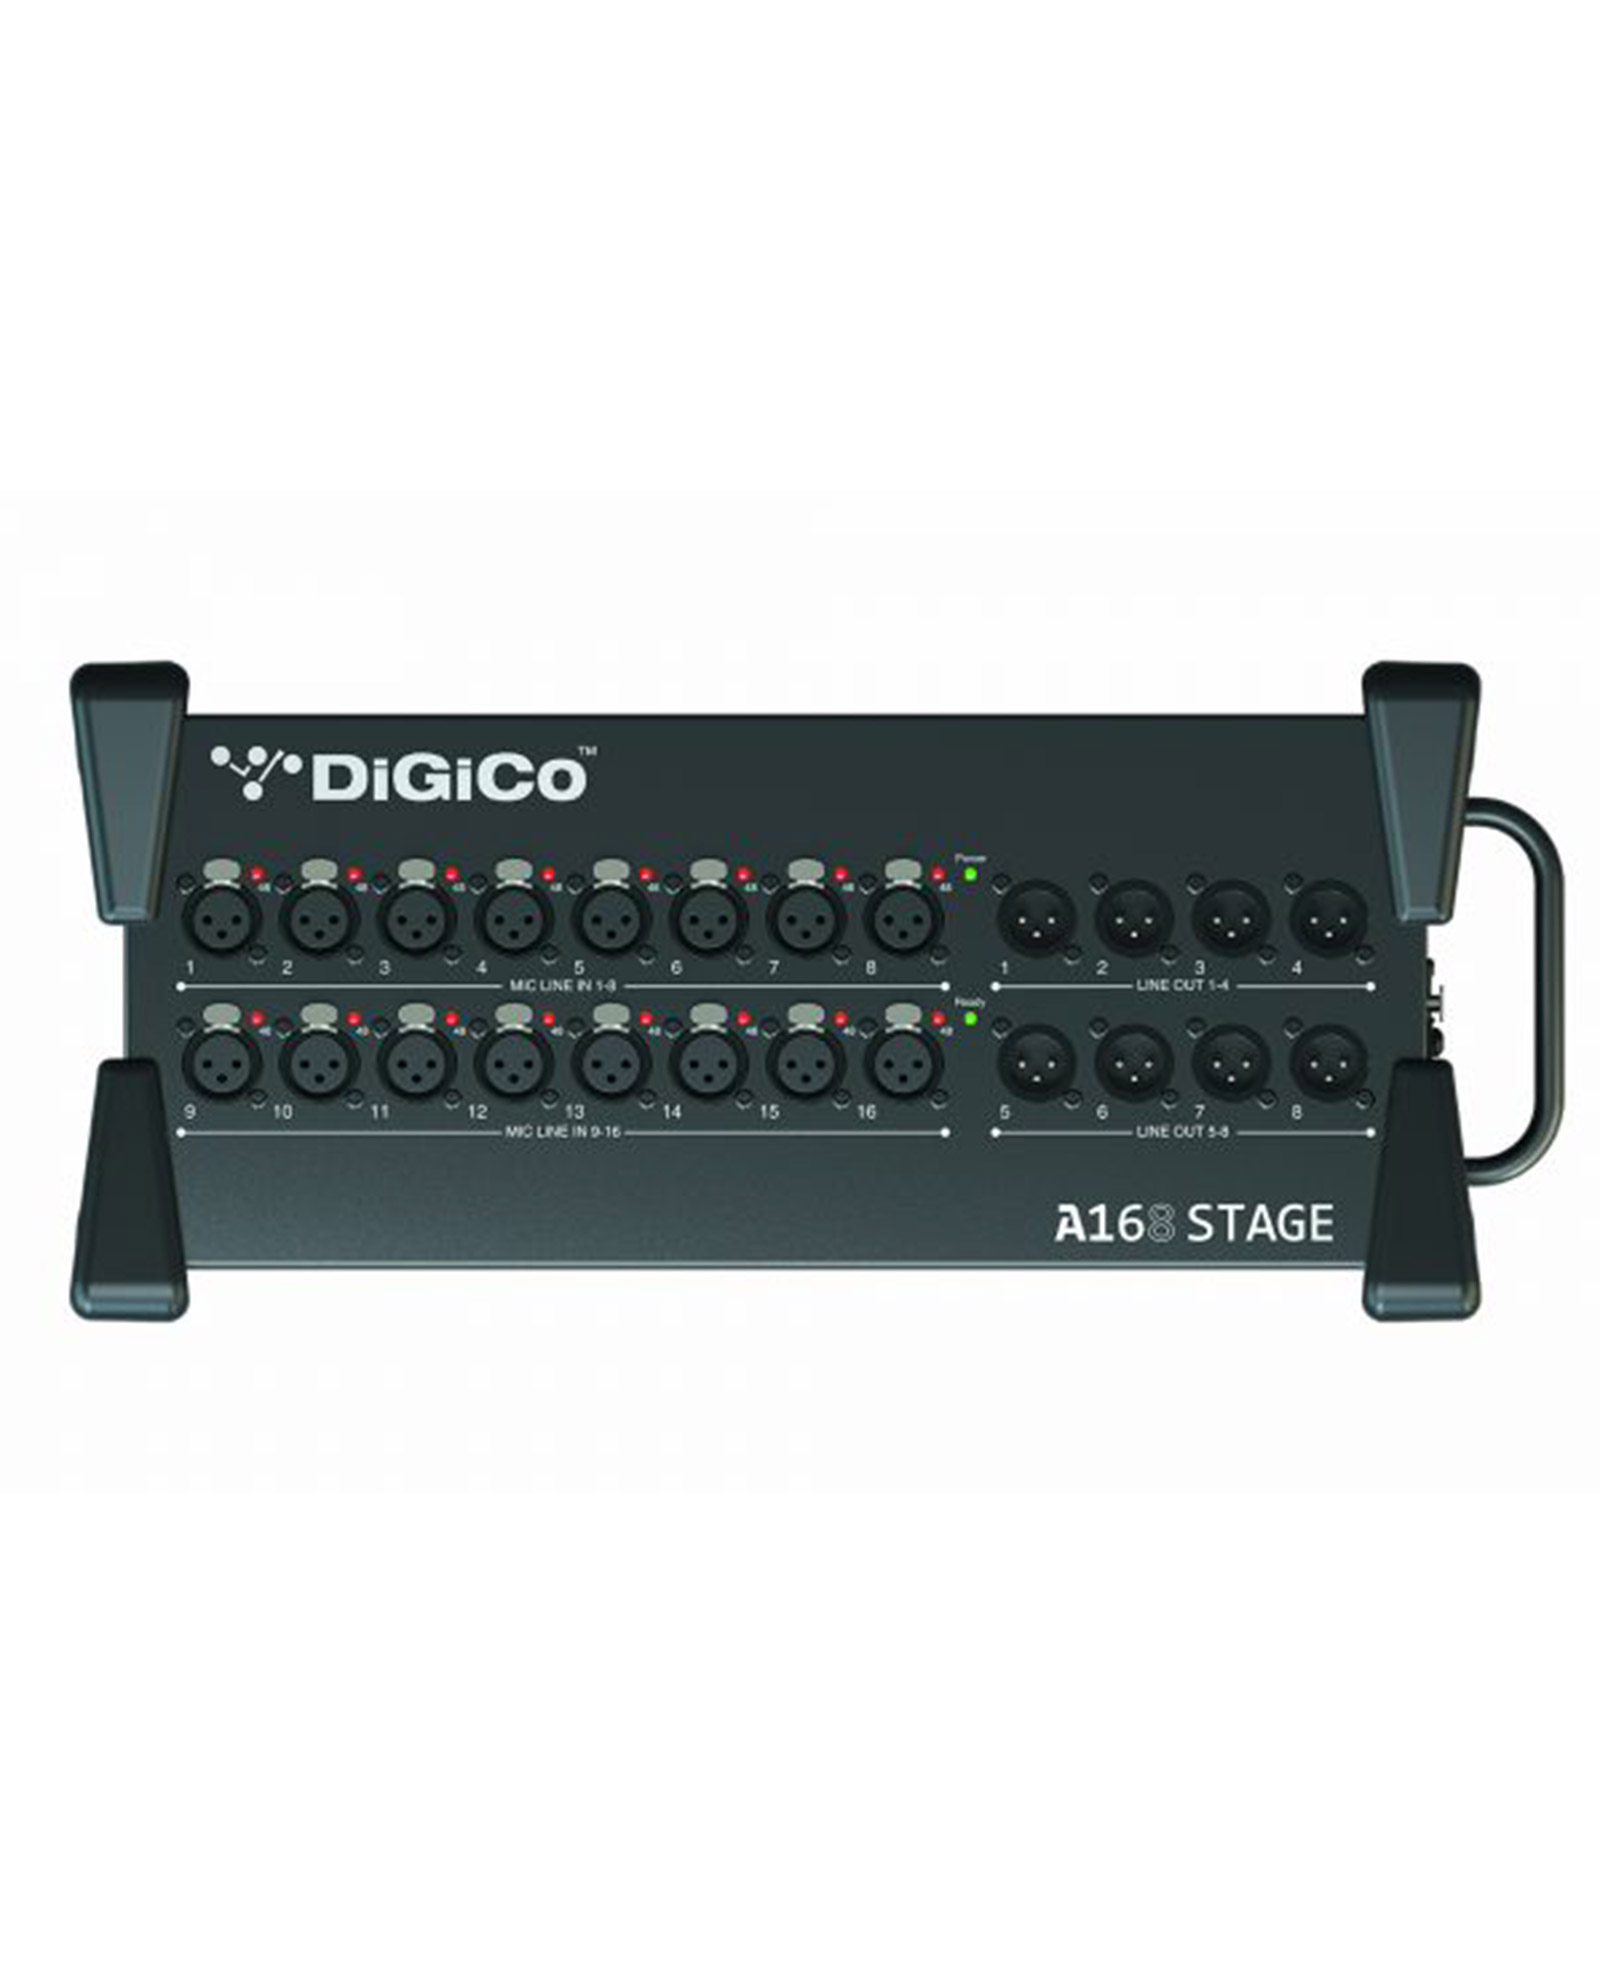 Digico a168 Stage